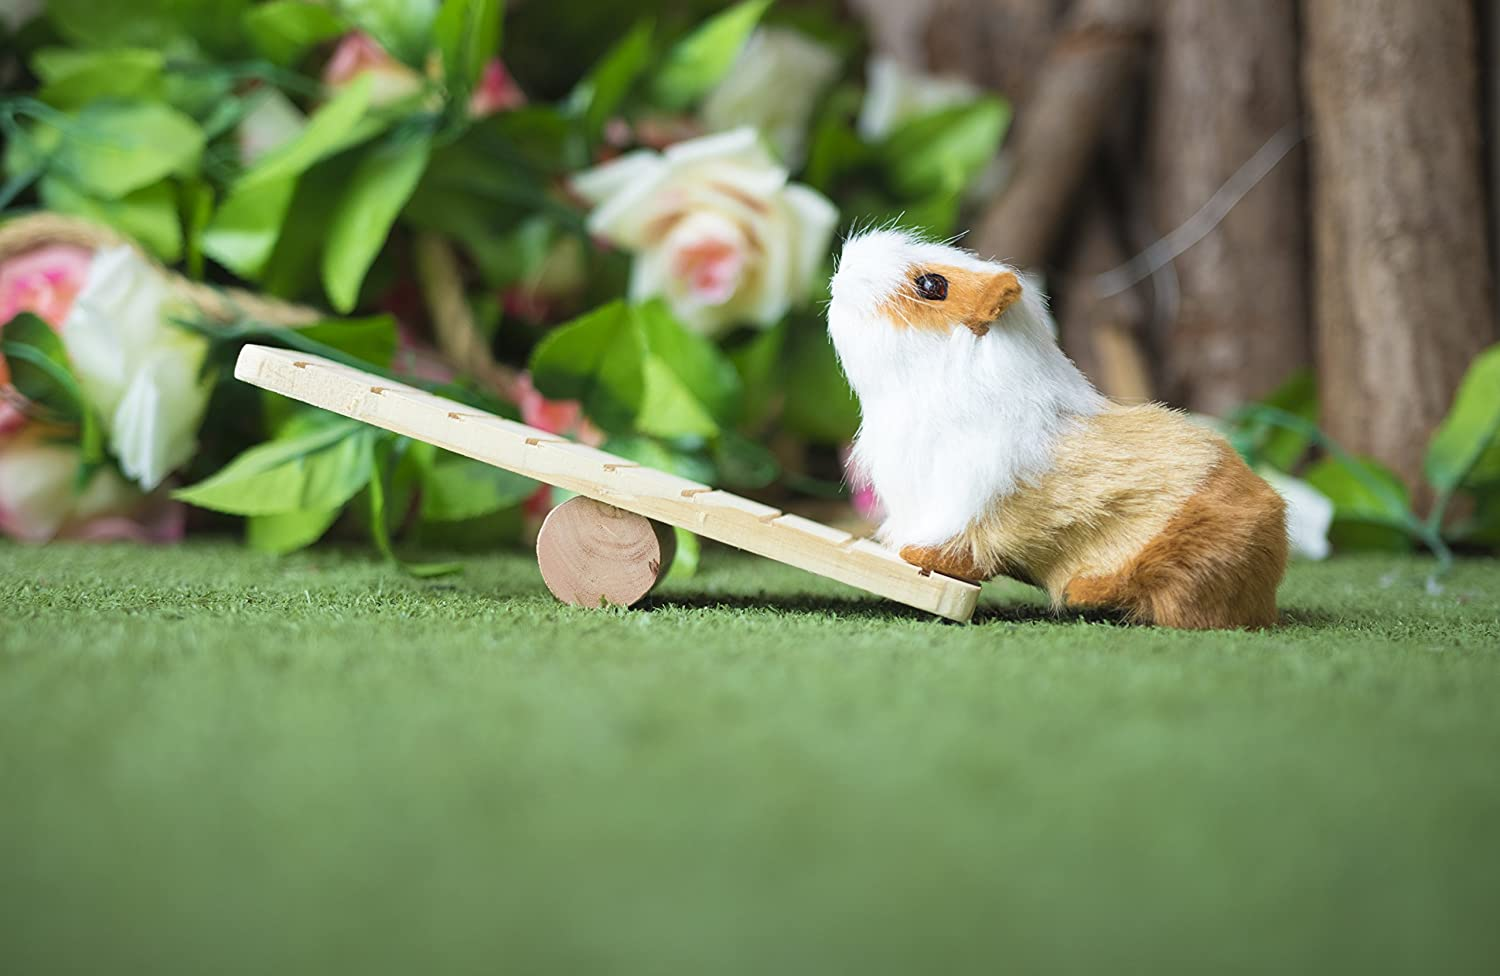 HEHEN Wood Seesaw for Hamster Totgold Small Animals